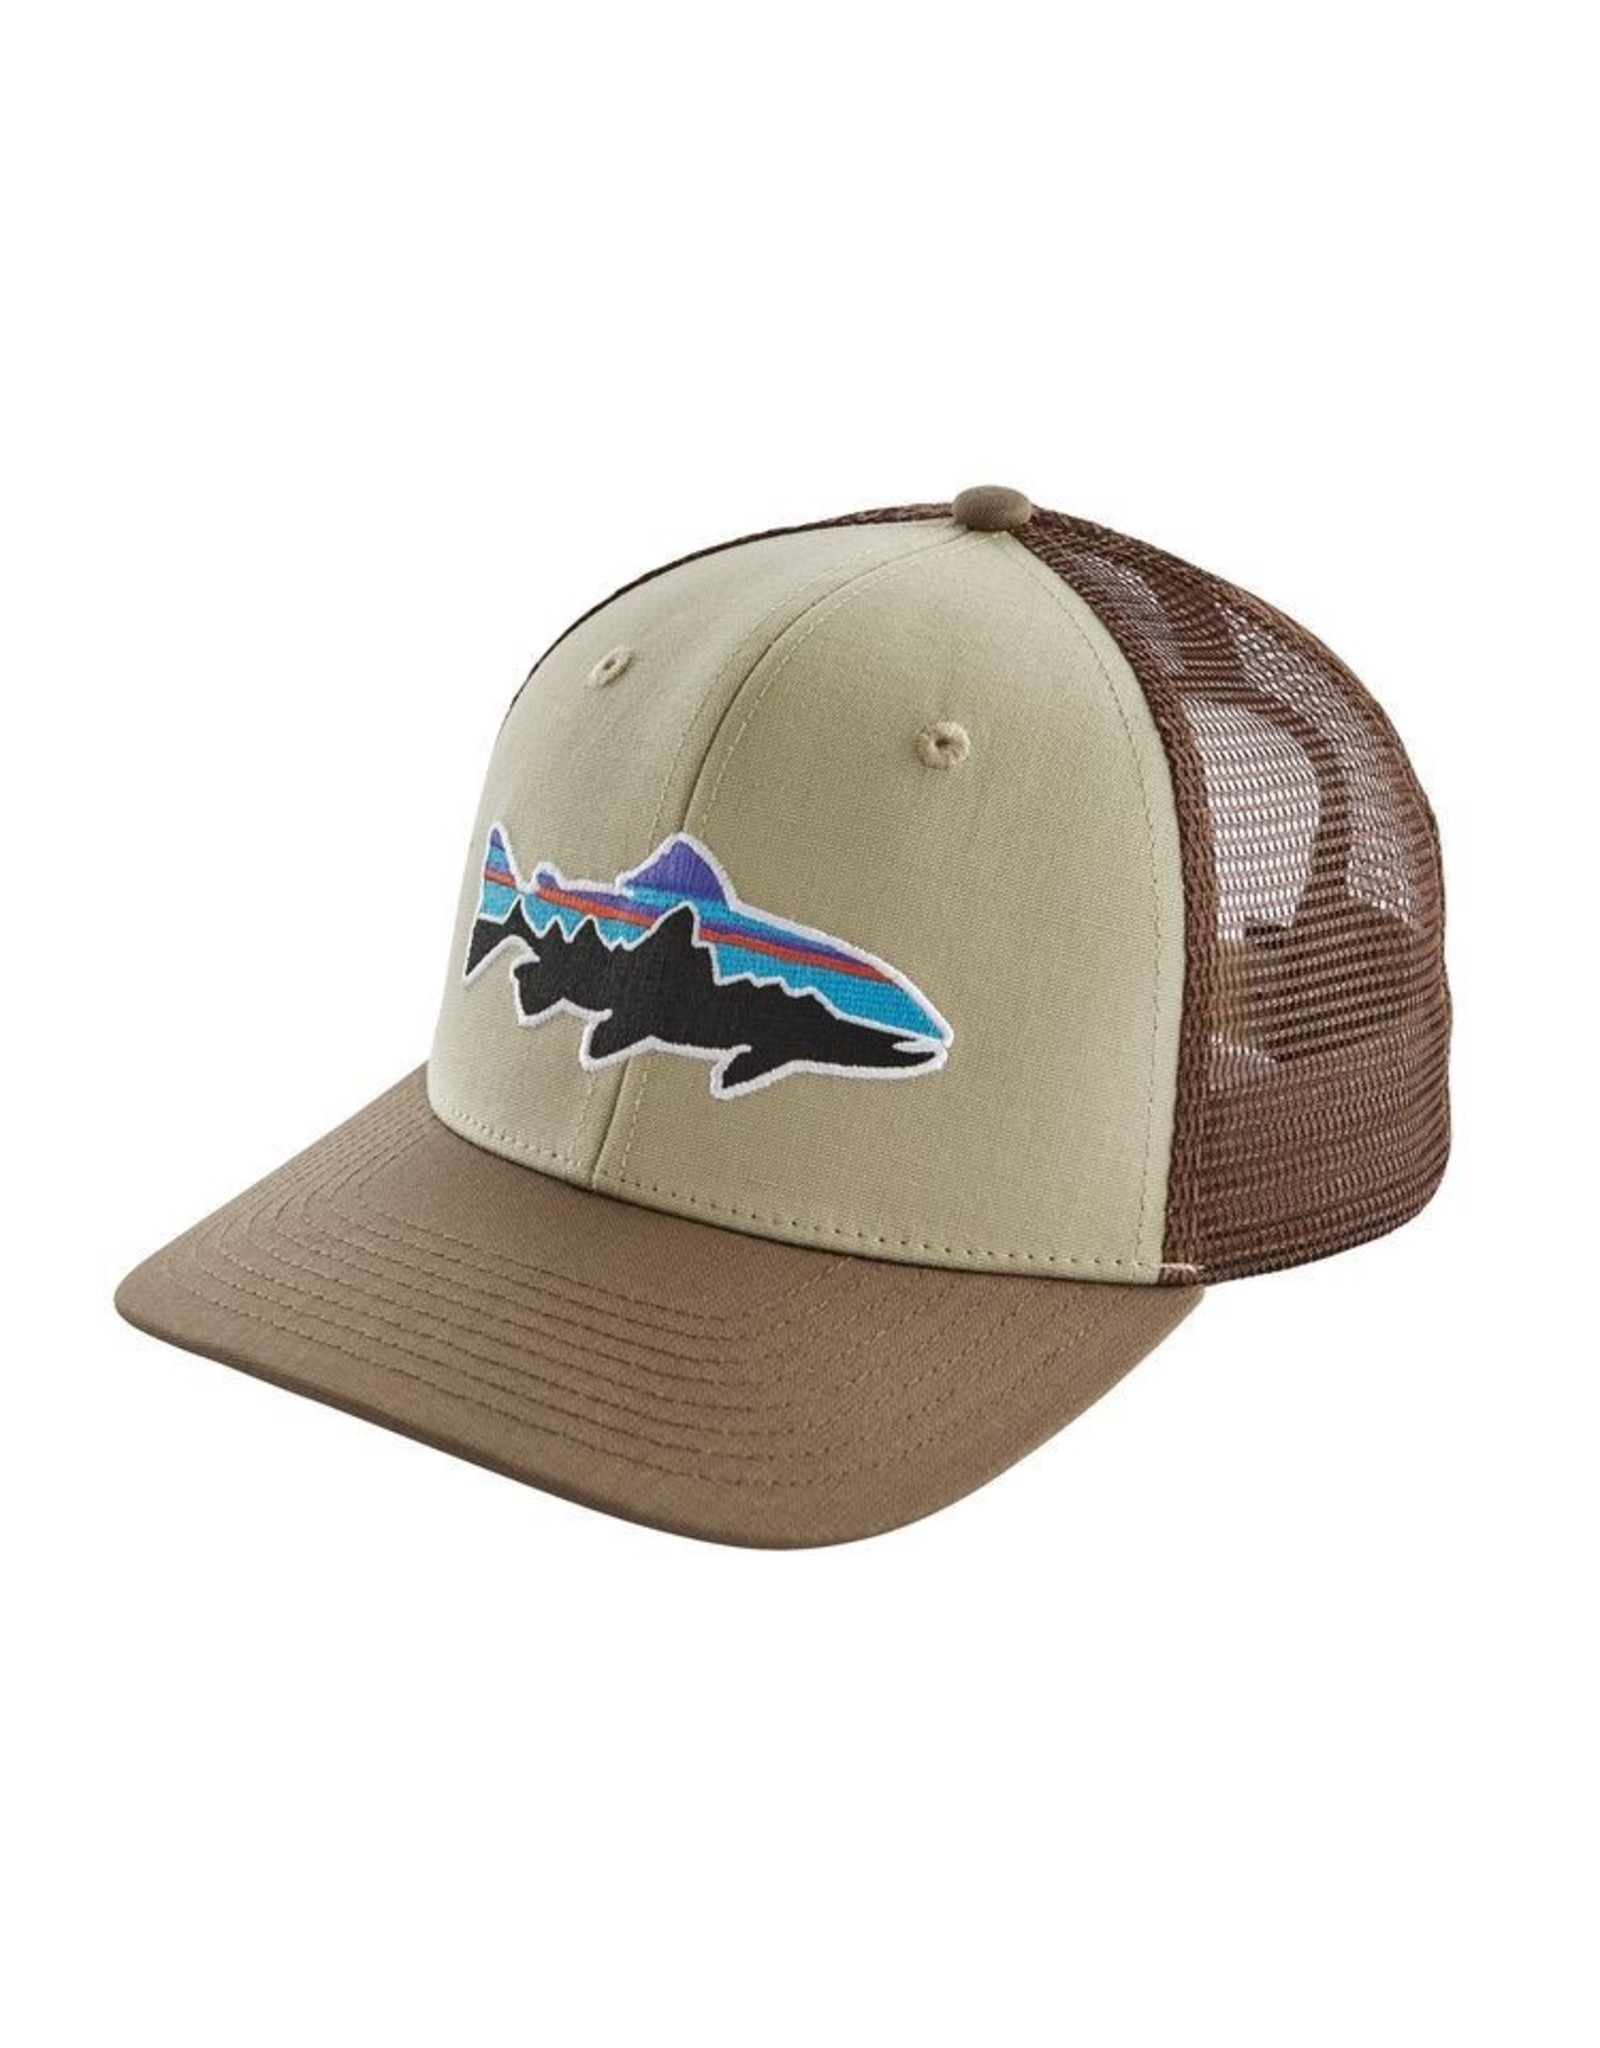 Patagonia Patagonia - Fitz Roy Trout Trucker Hat - Mid-Crown